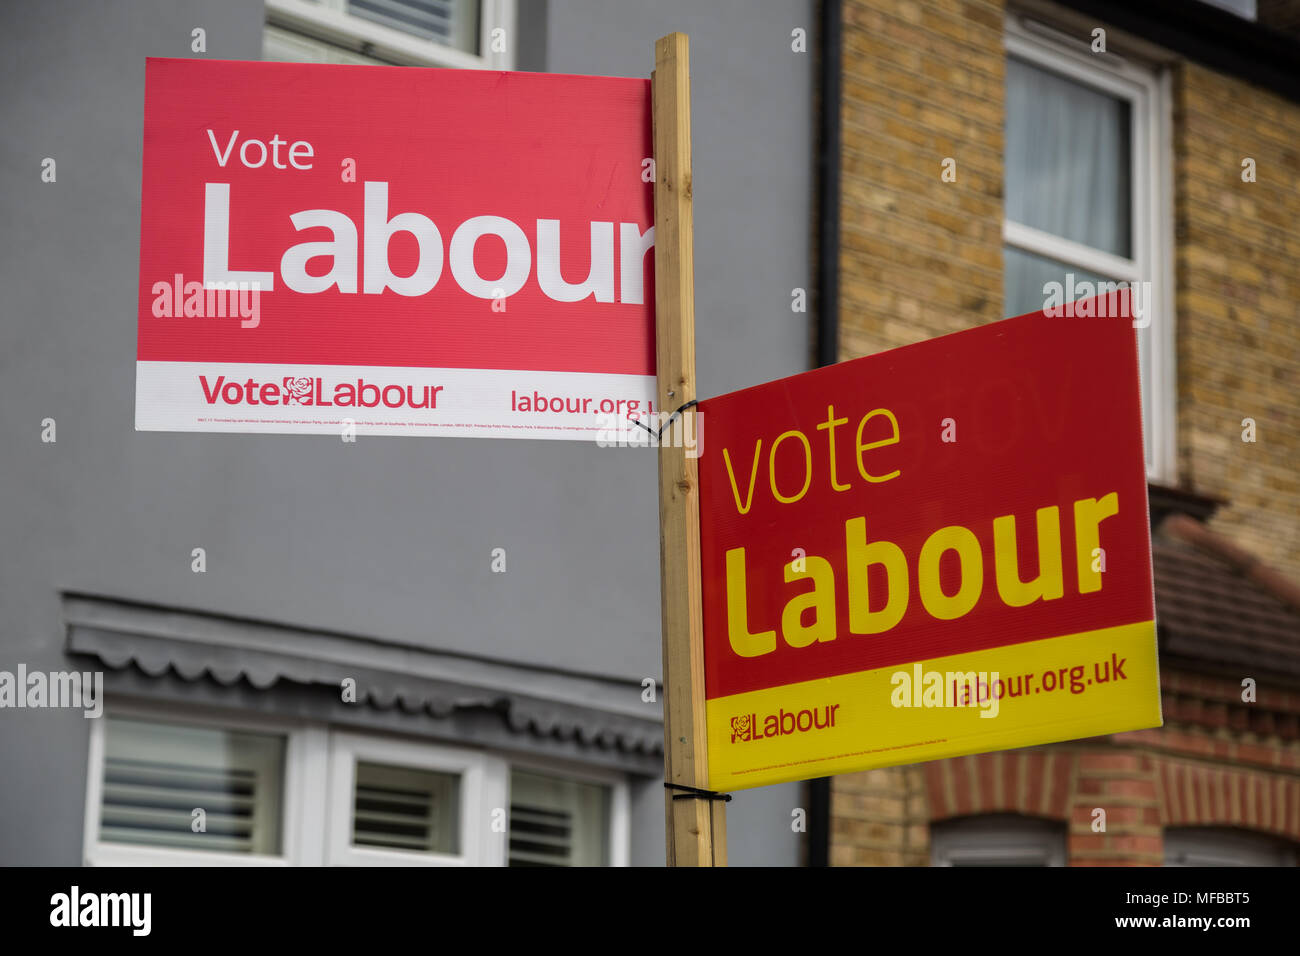 Labour party election boards ready for the London local elections in Richmond, West London, UK. - Stock Image